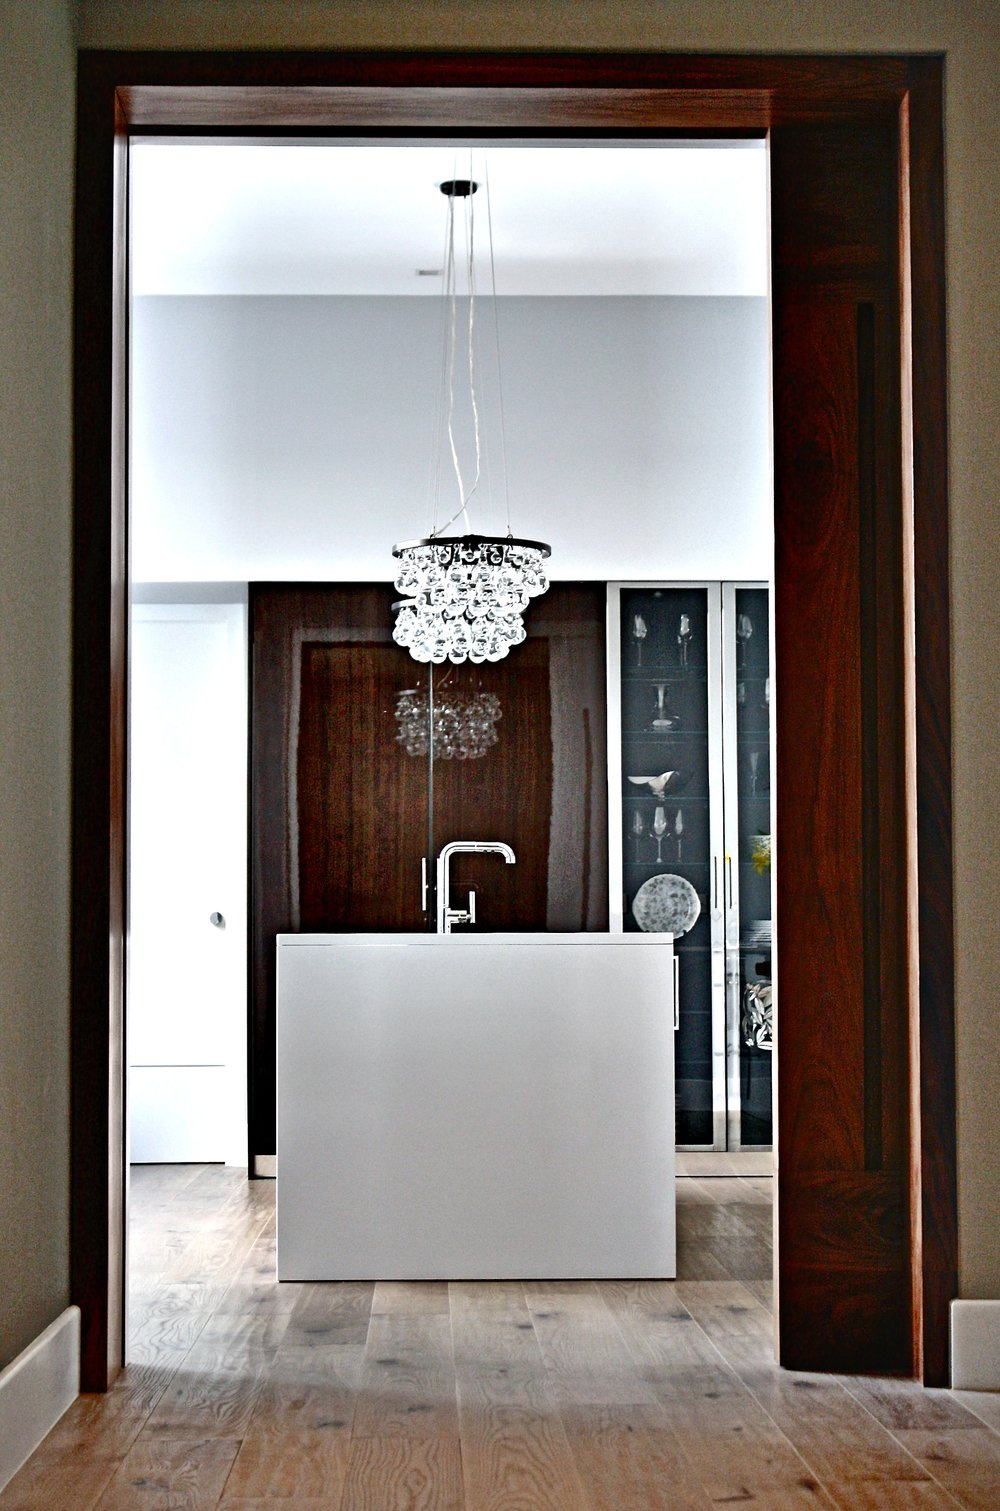 william-adams-design-chapultepec-mexico-city-kitchen-entrance.jpg